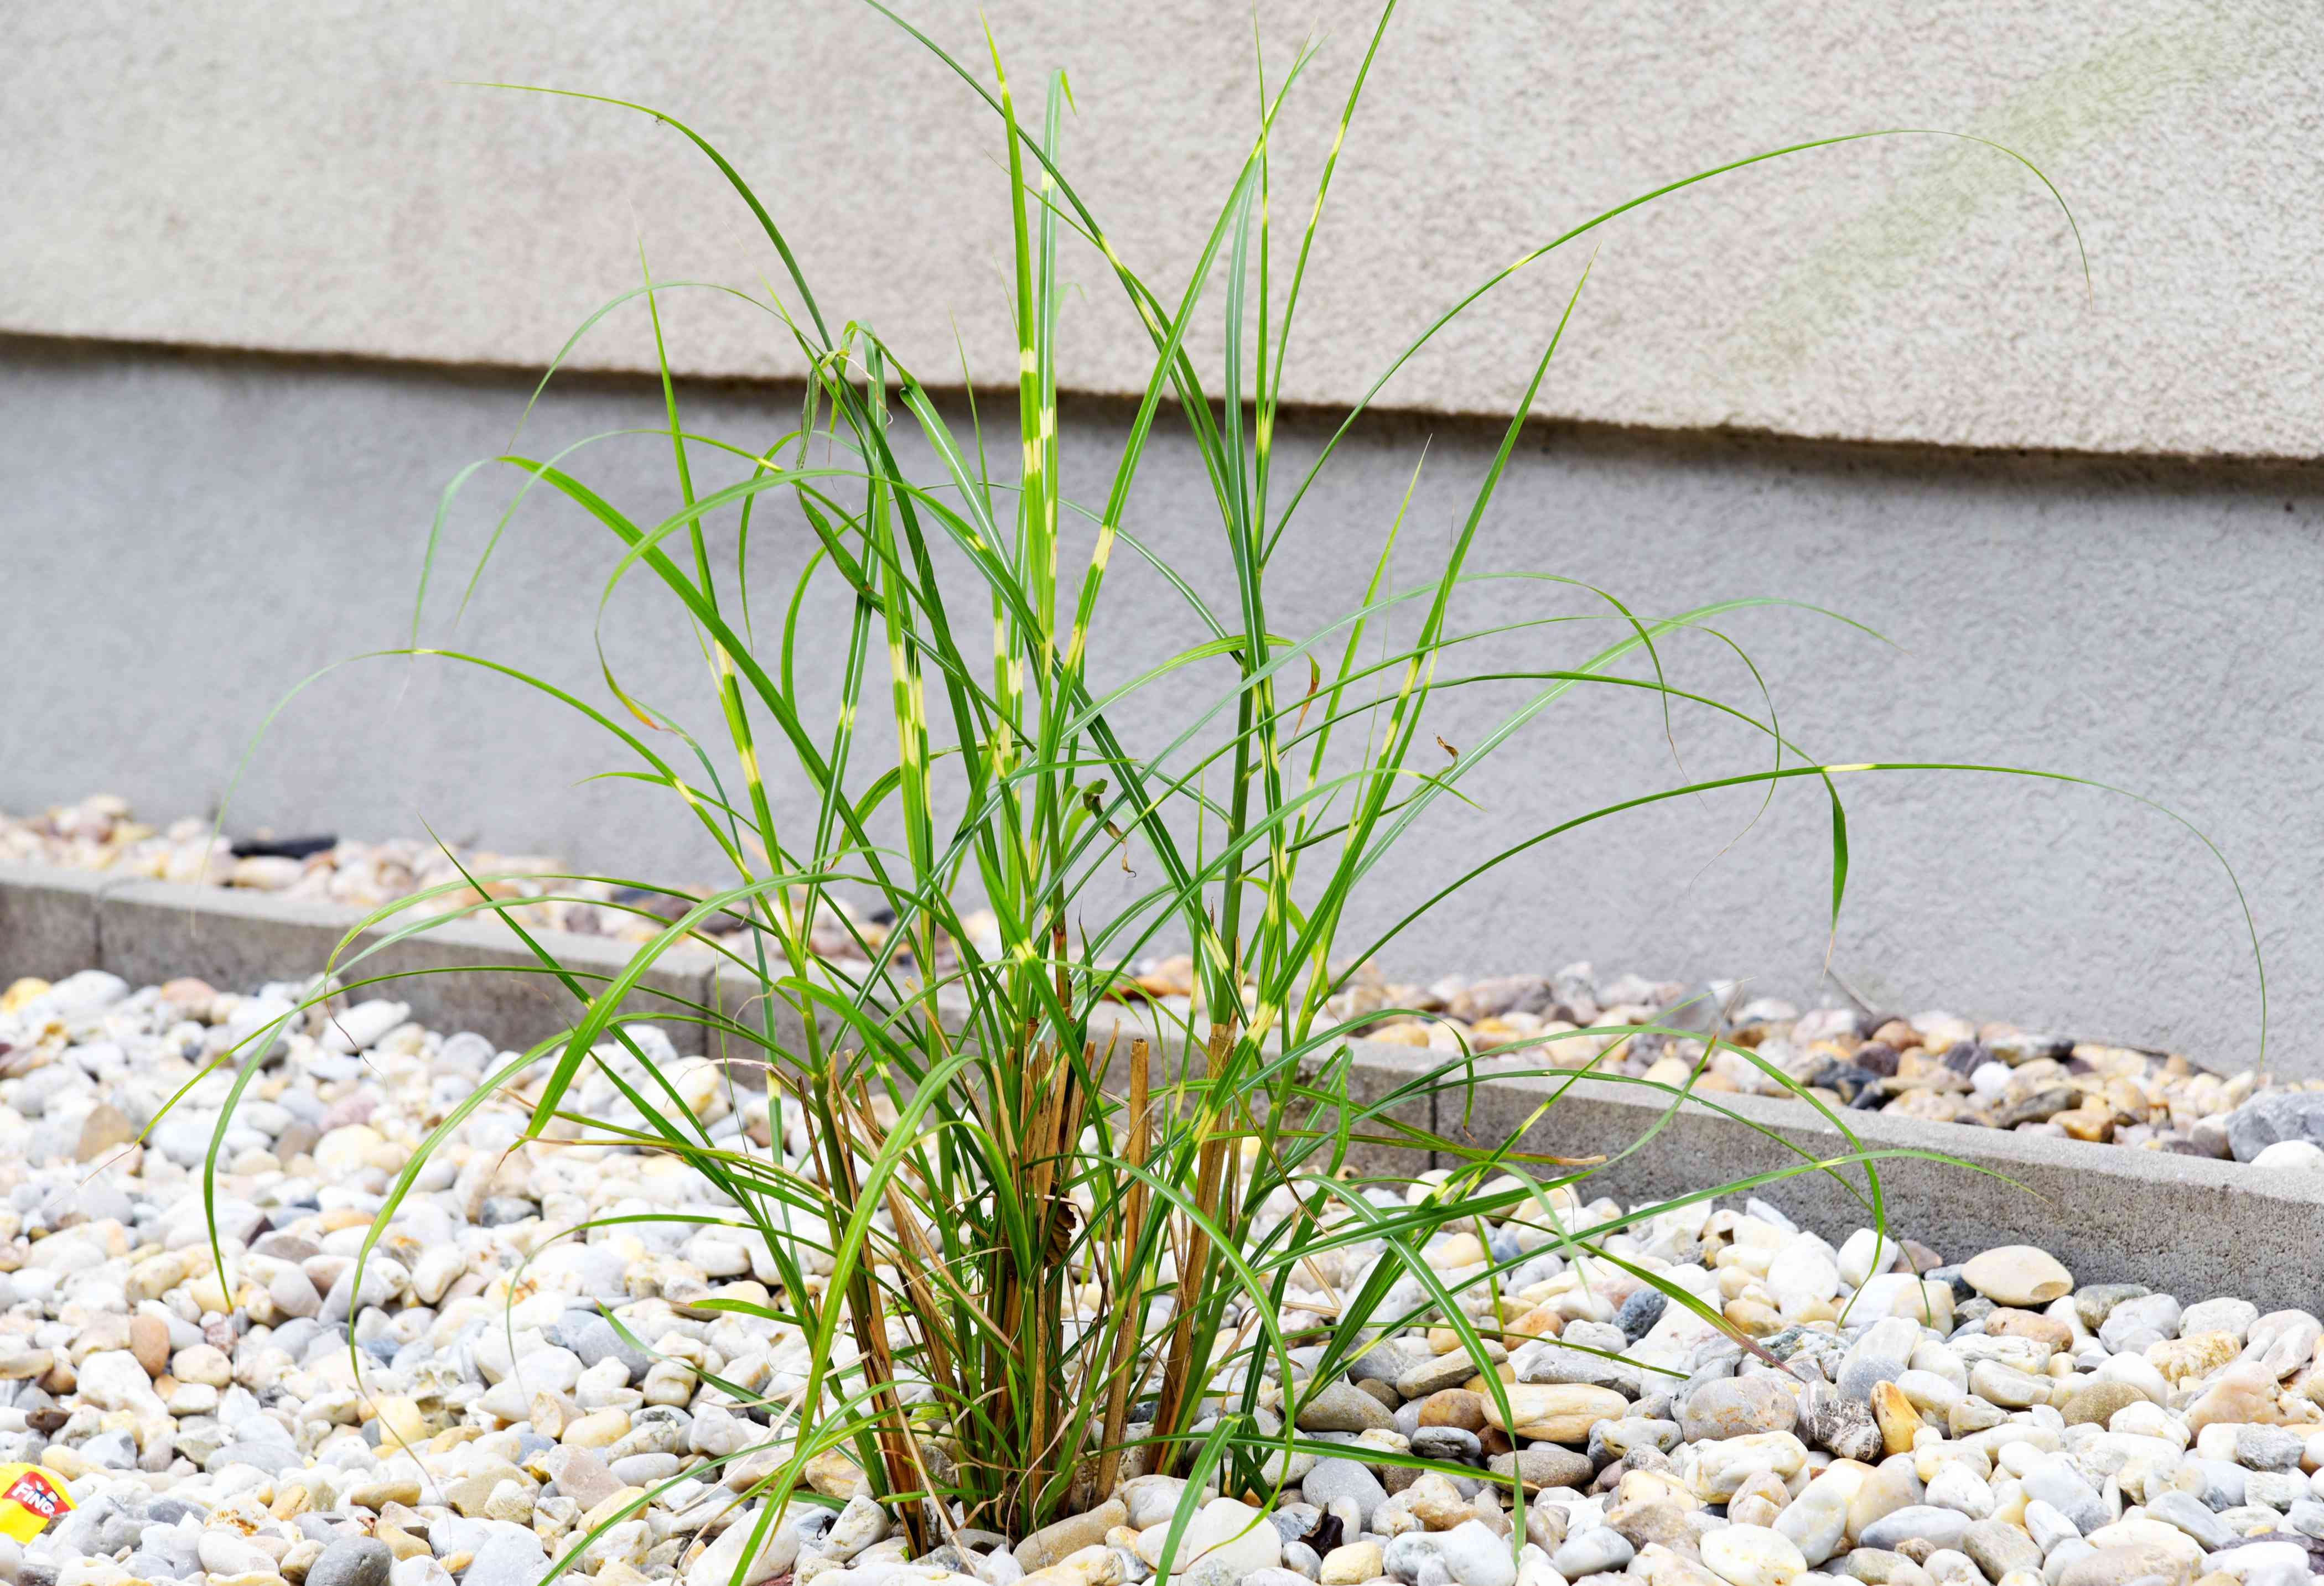 Zebra grass plant surrounded by small rocks with thin variegated green and gold leaf blades